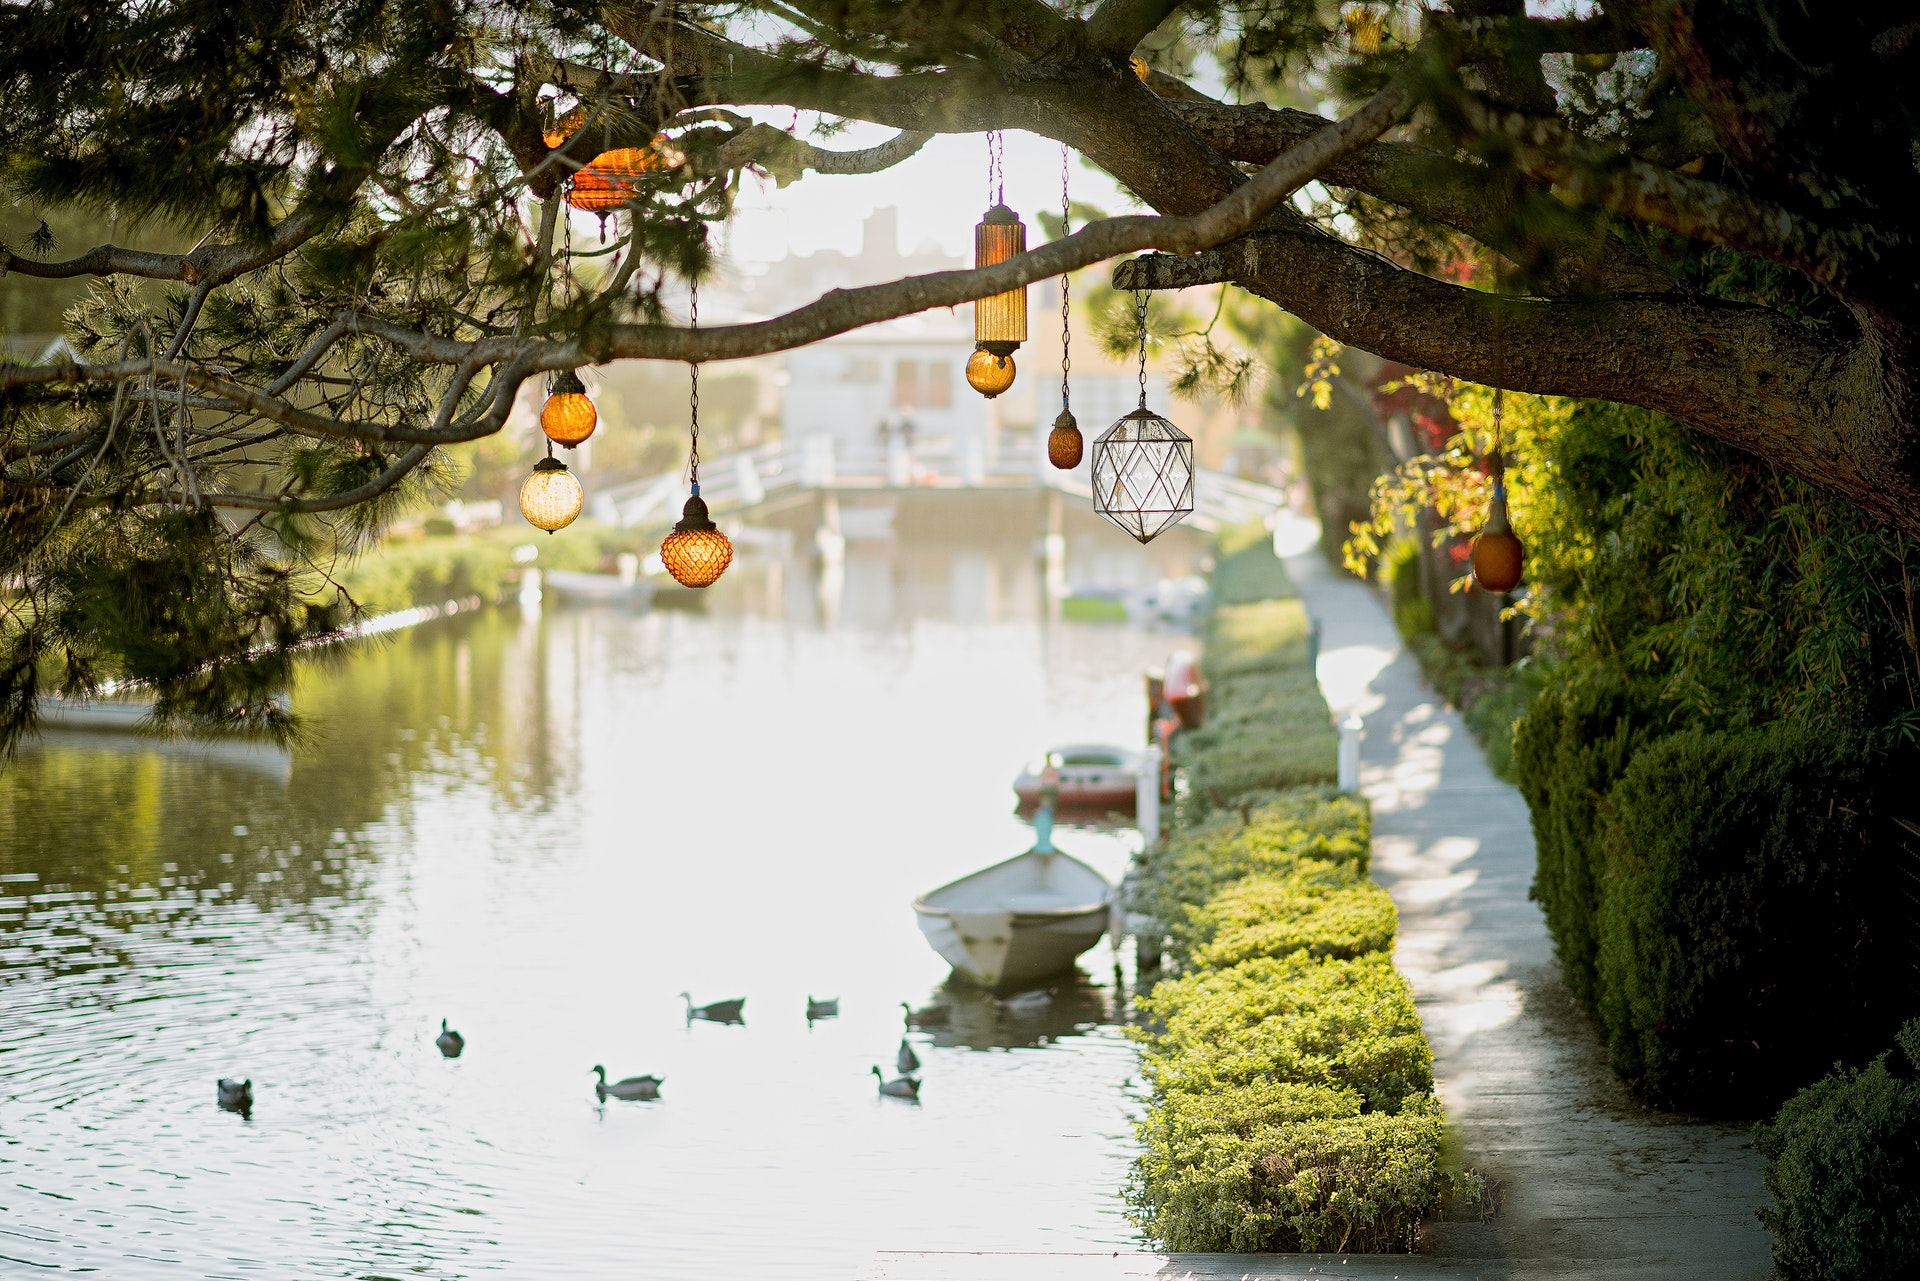 Staycation Post 001: Venice Beach Canals